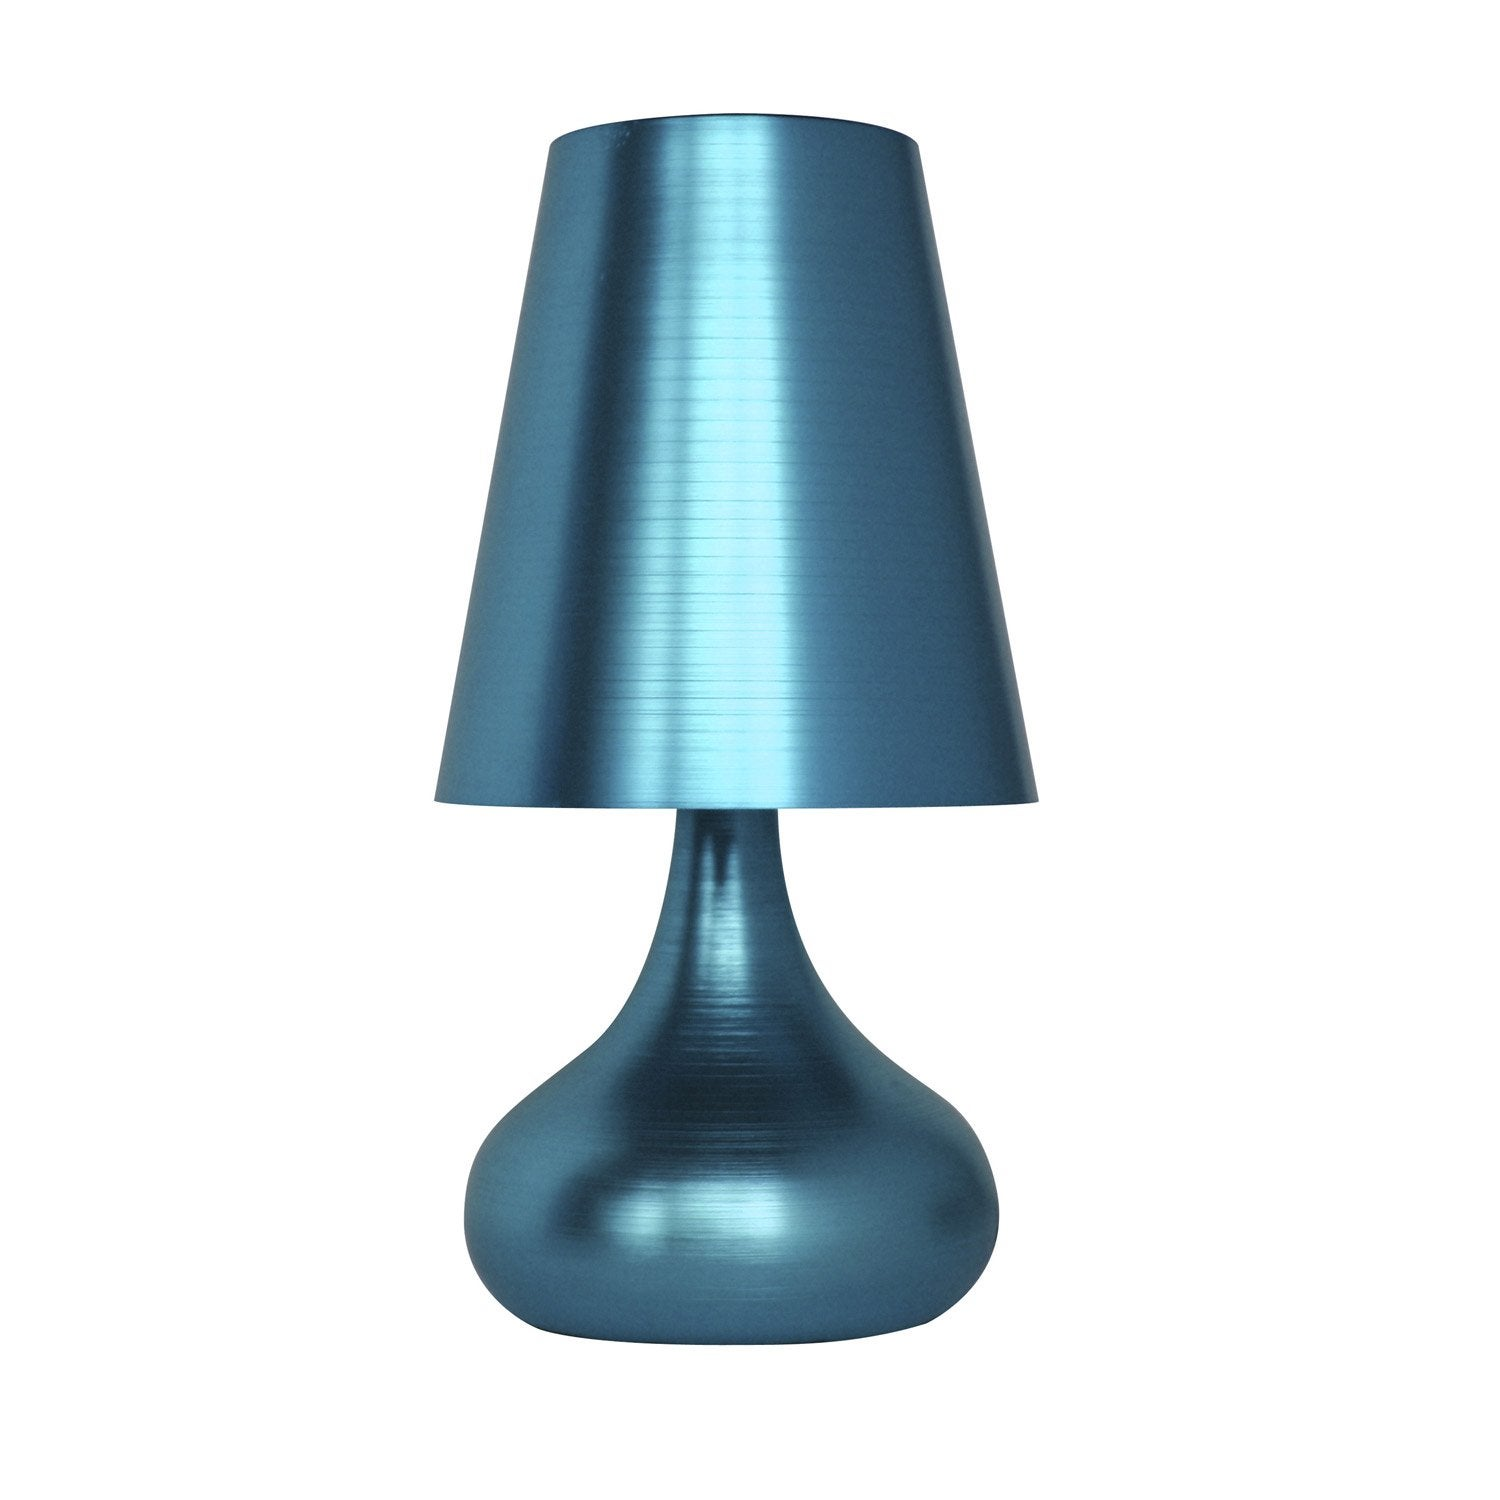 lampe touch seynave m tal bleu turquoise n 3 25 w leroy merlin. Black Bedroom Furniture Sets. Home Design Ideas